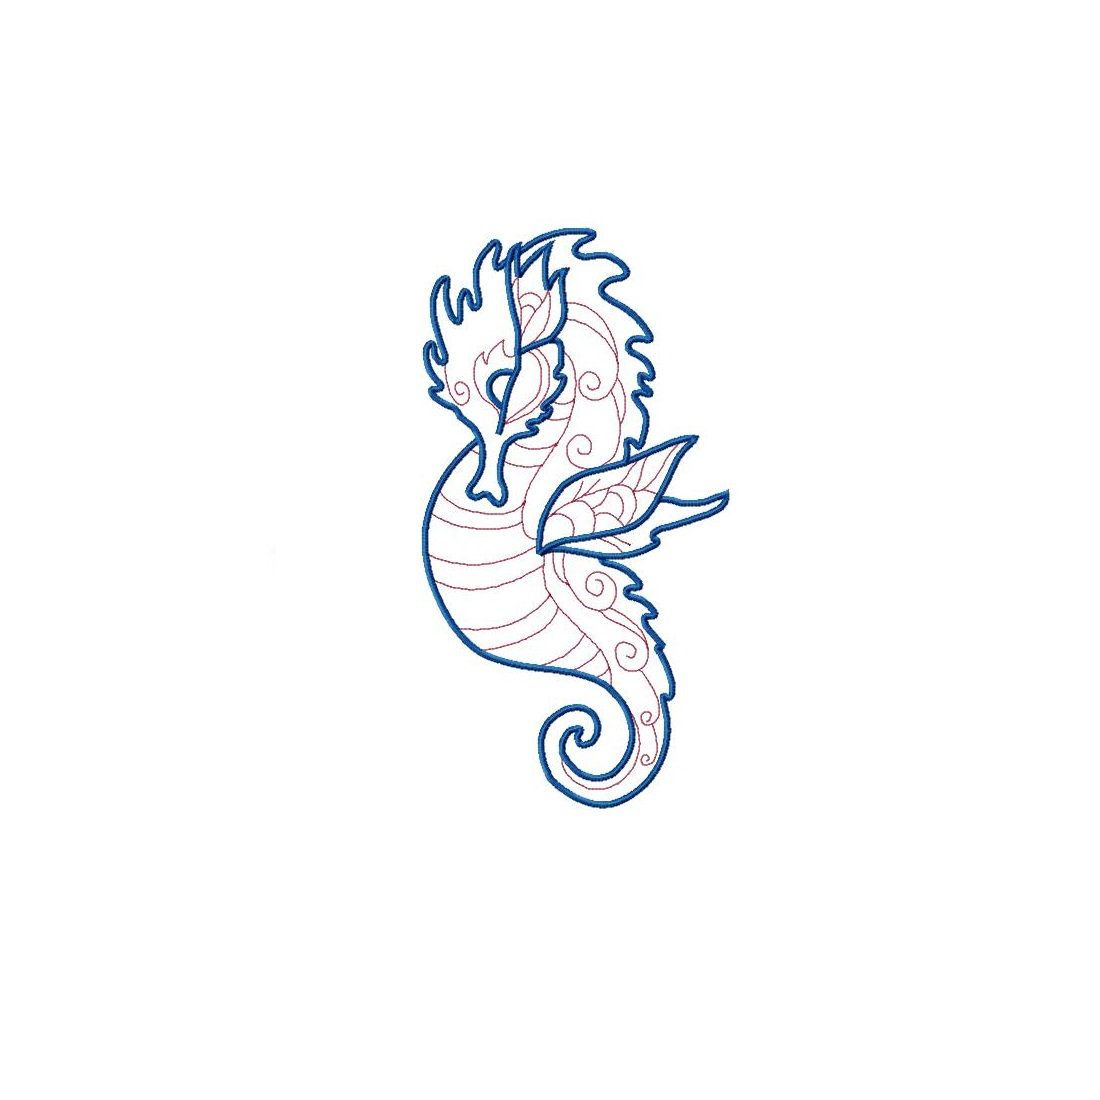 8 inches heights 7 7 Sizes 4.5 4 Seahorse Sketch Embroidery Design 5.5 5 6